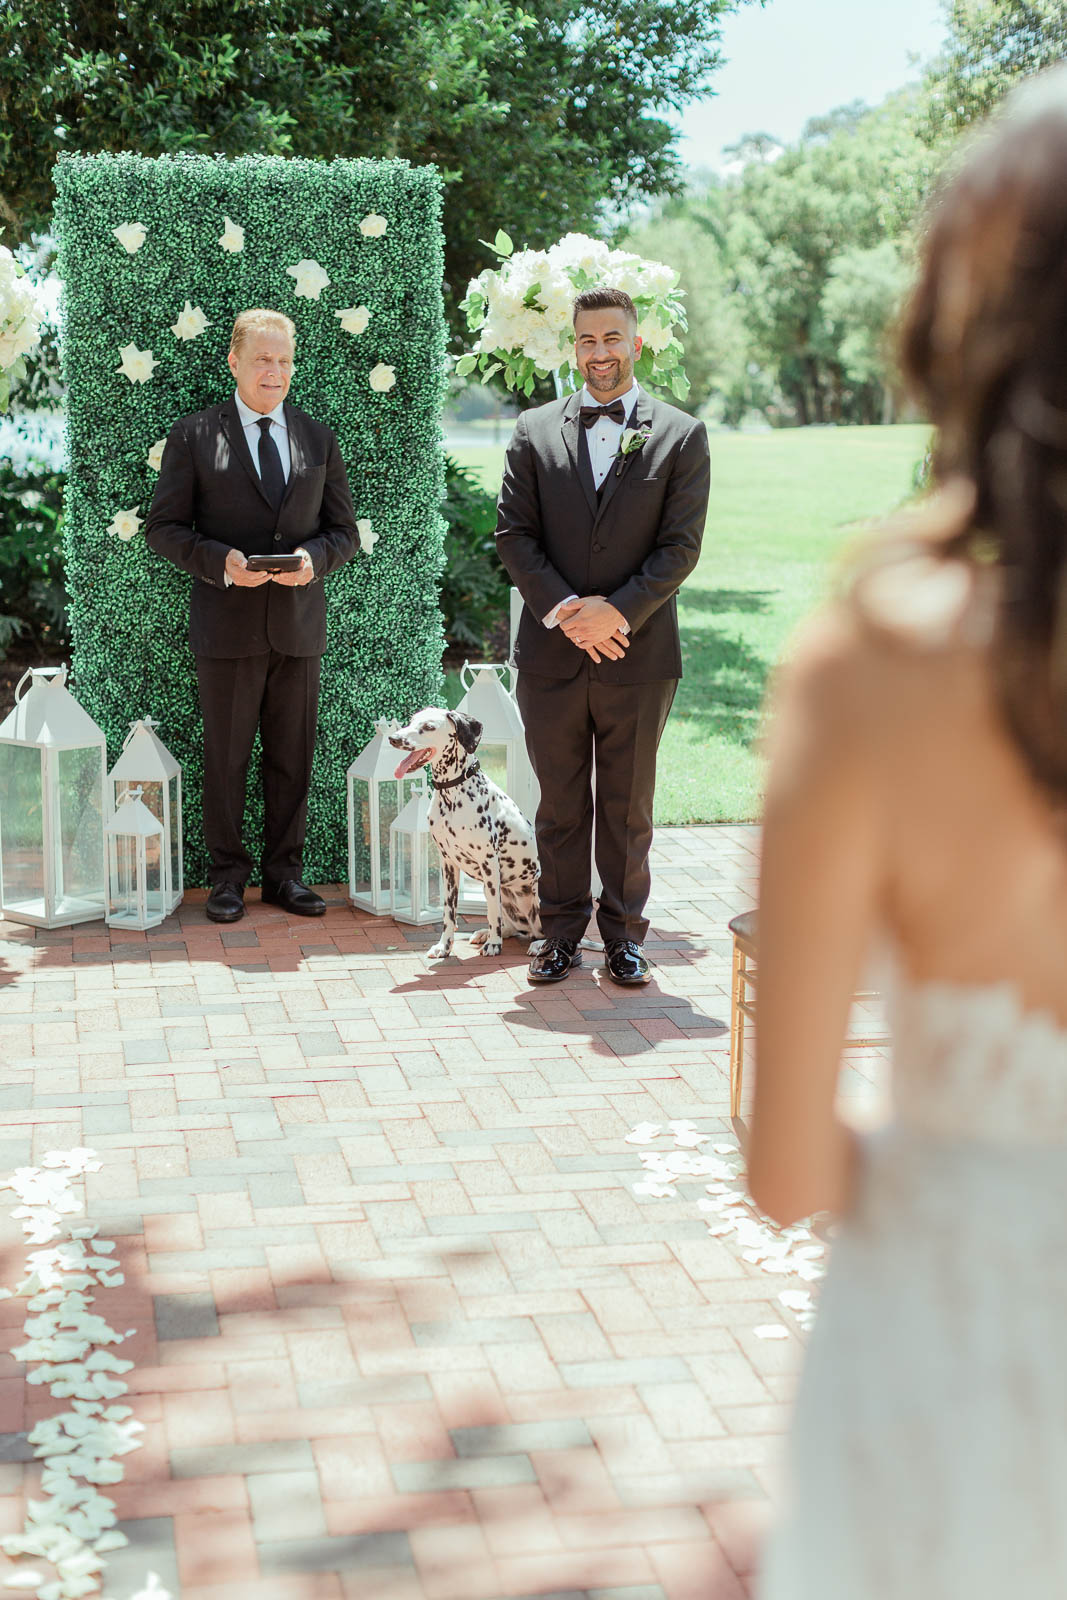 Groom and officiant watching bride walk down the aisle.